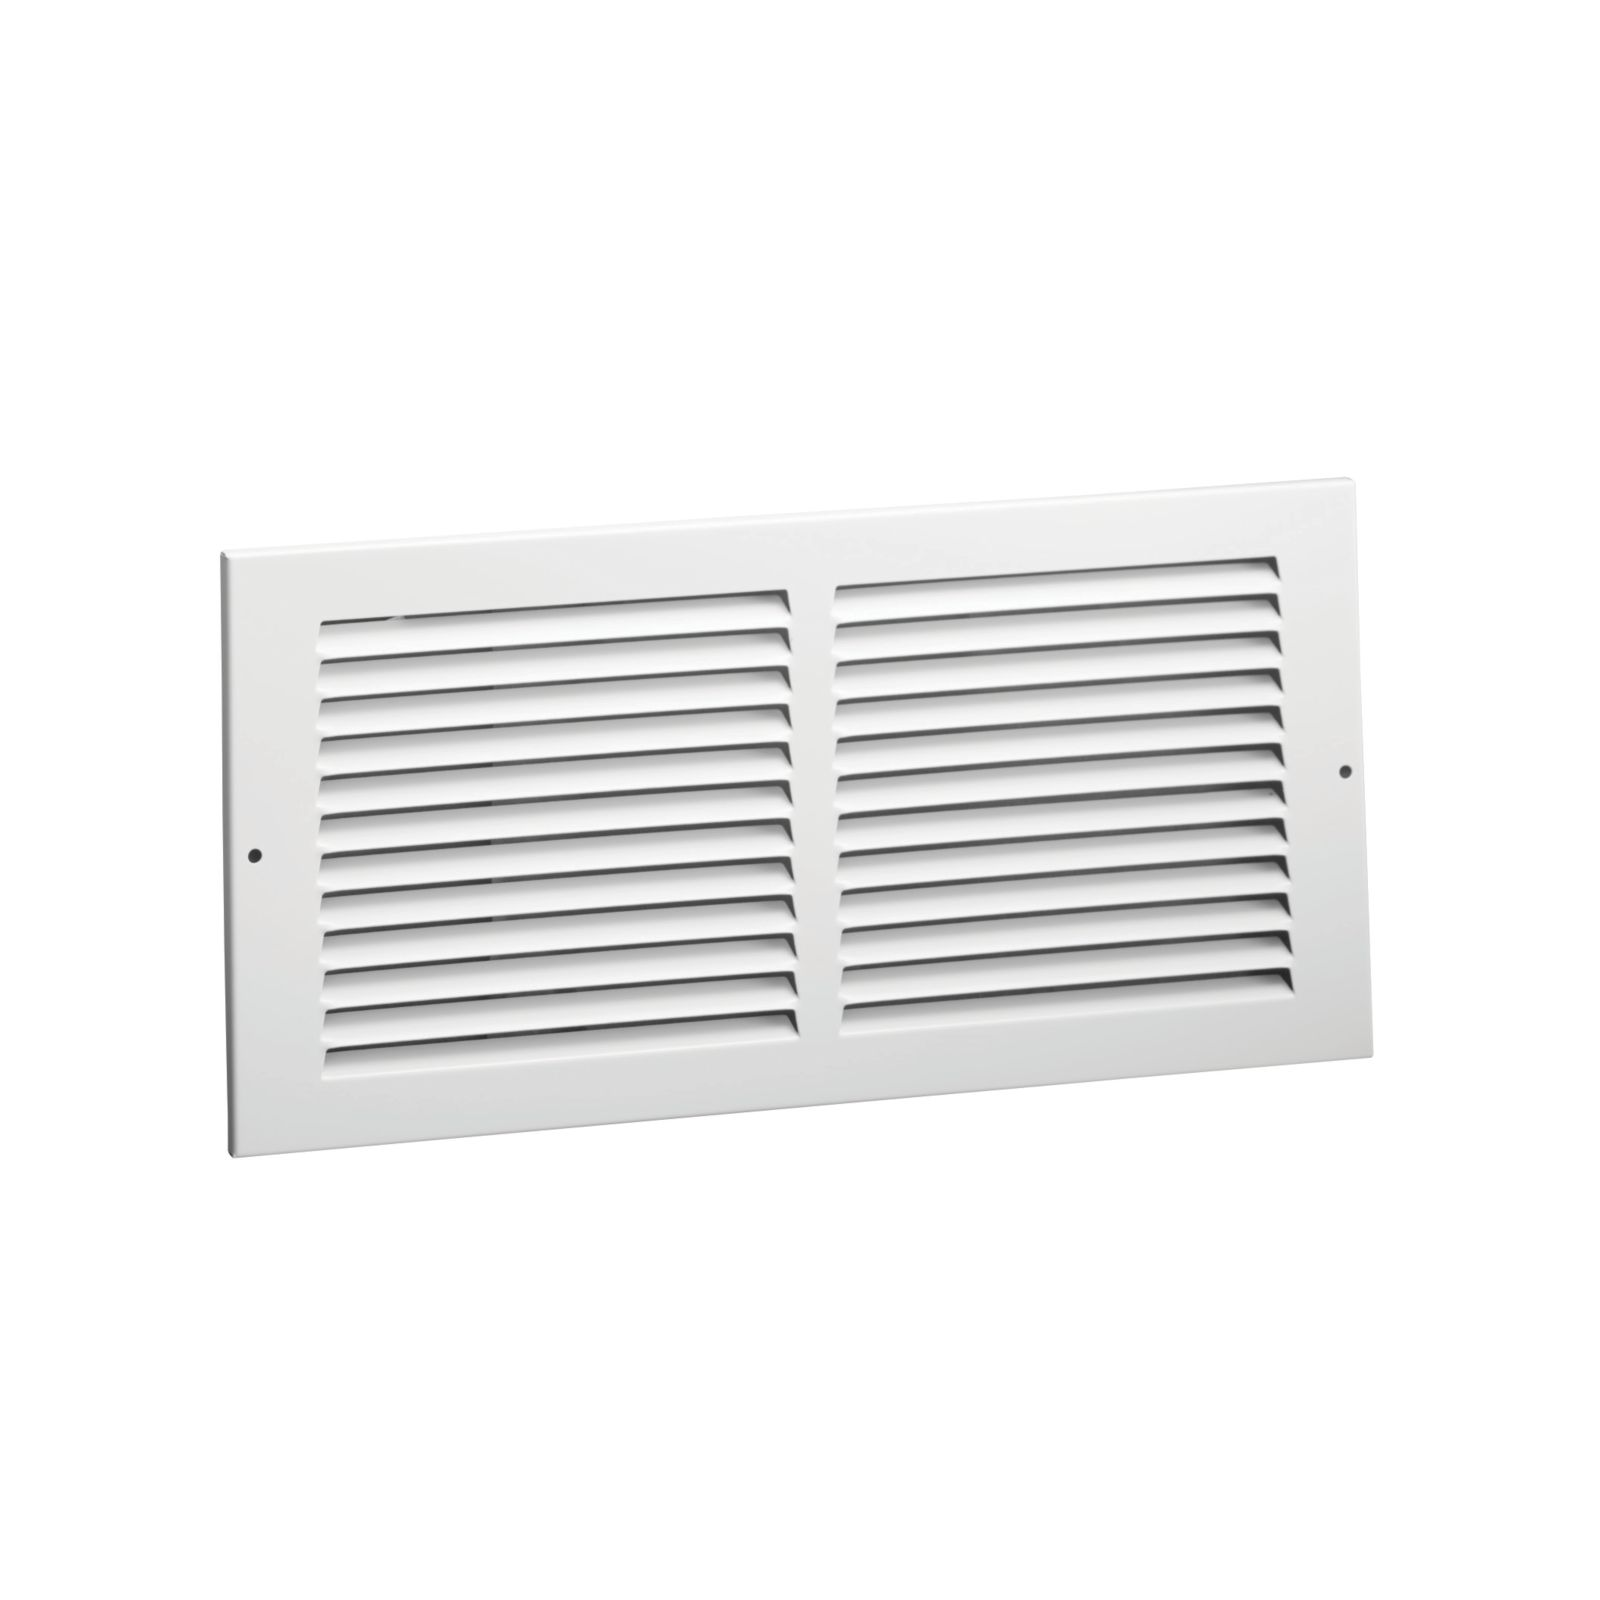 "Hart & Cooley 043310 - #672 Steel Return Air Grille, White Finish, 10"" X 10"""